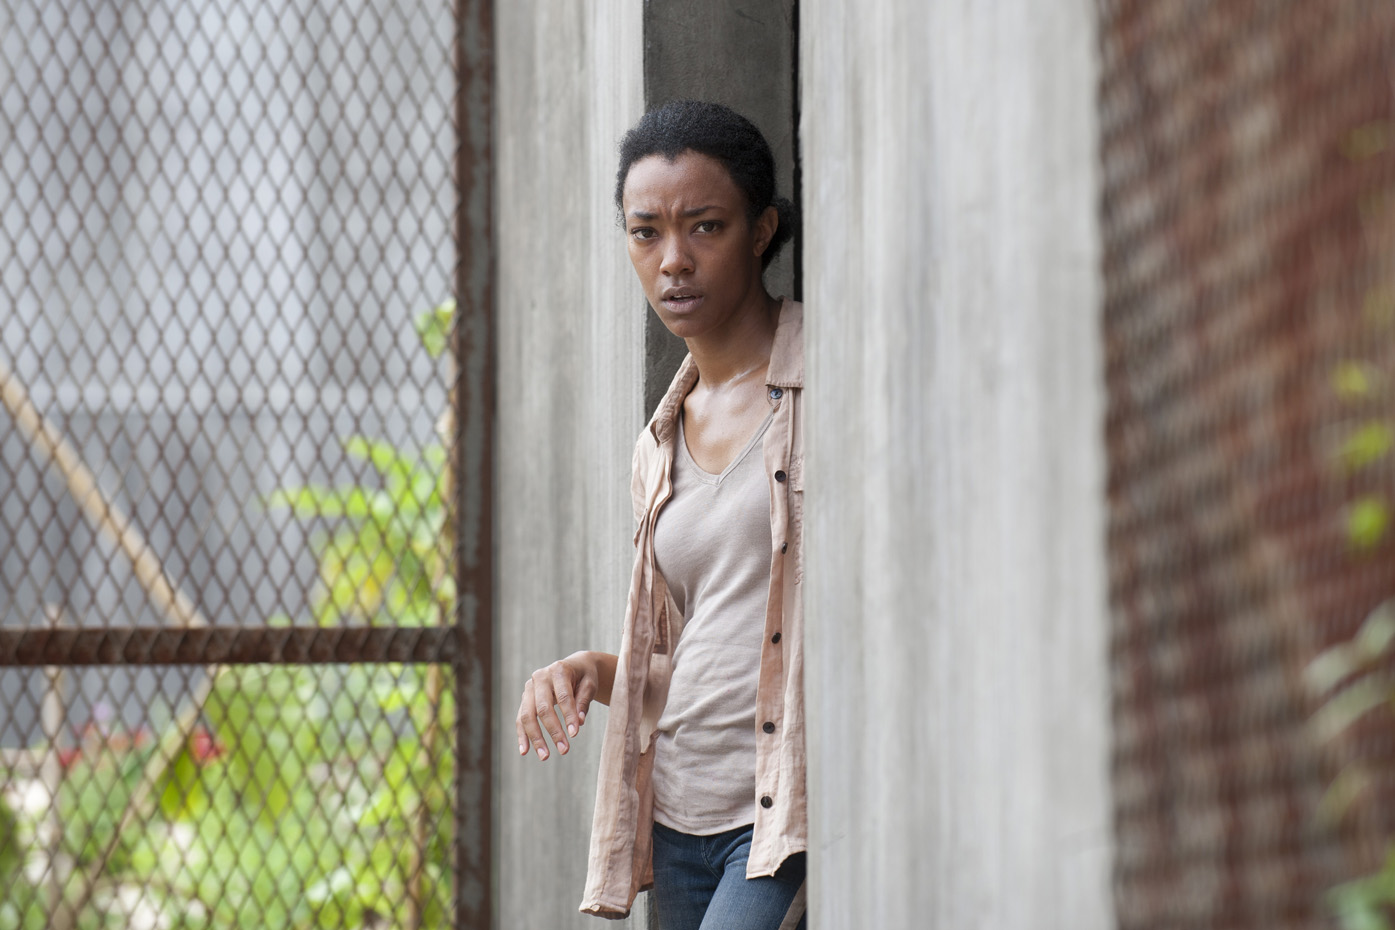 The Walking Dead - 04x03 - Isolation